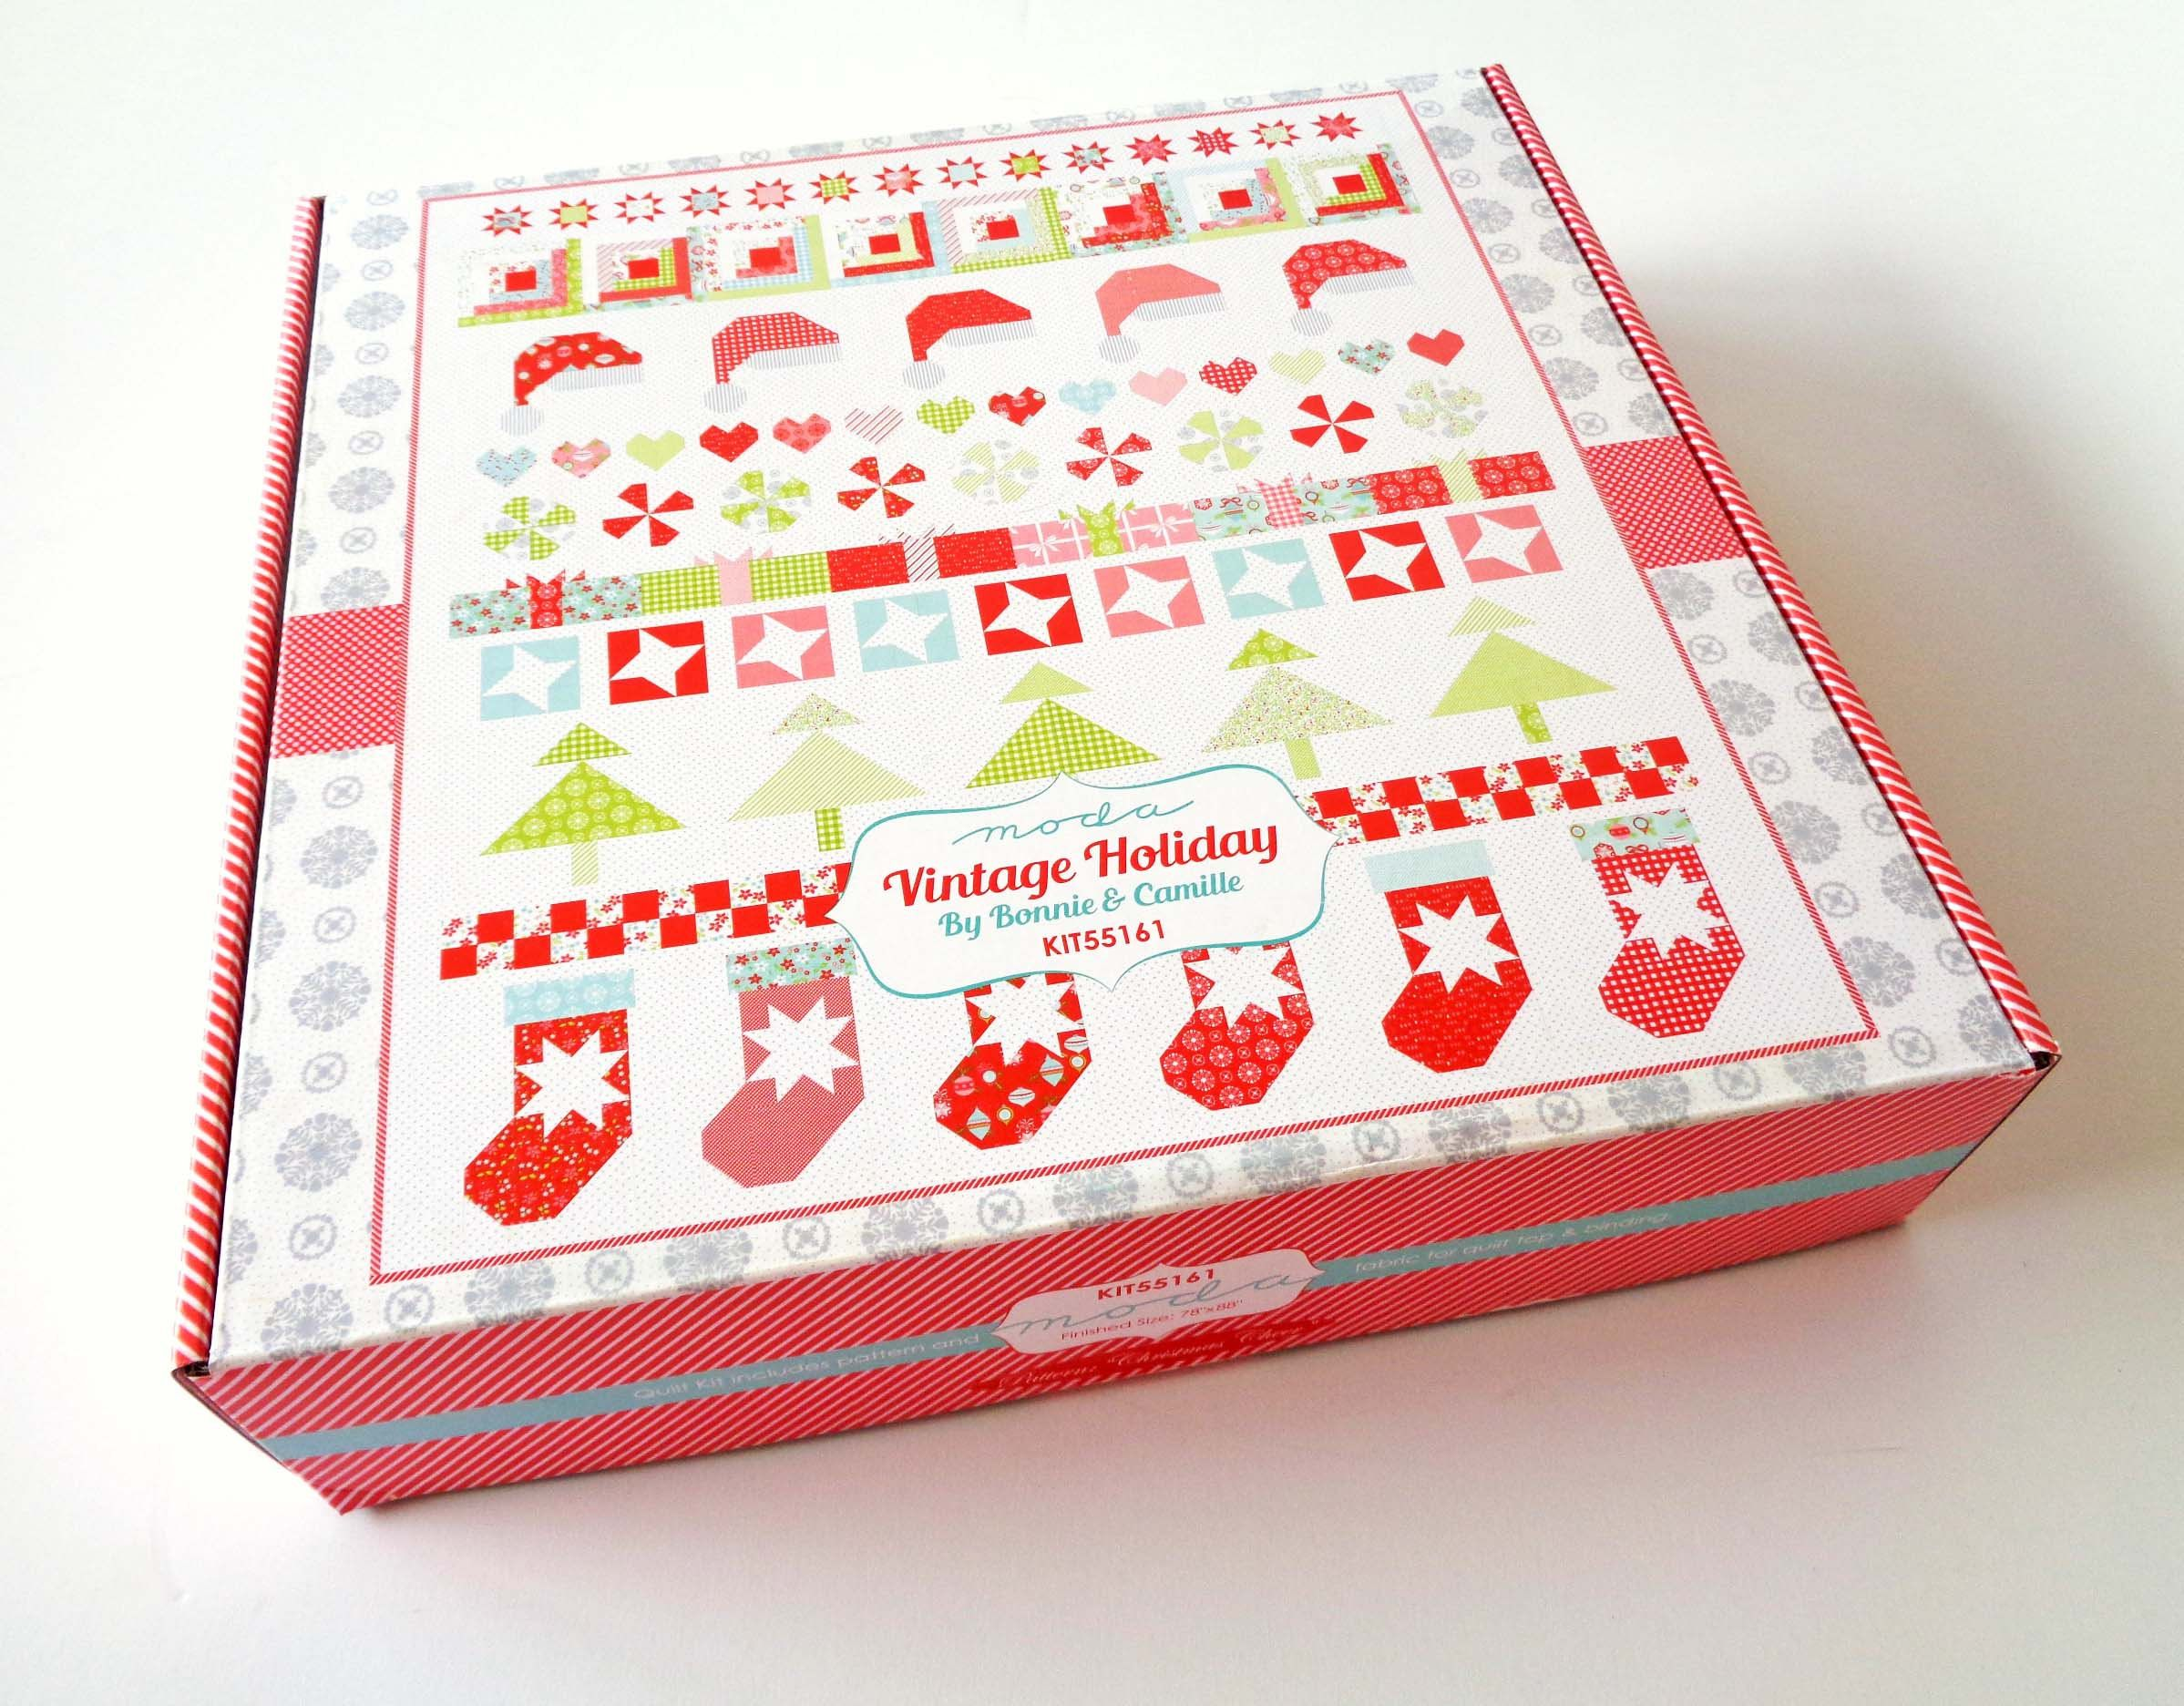 Quilt Pattern Moda Fabric By Bonnie Camille Vintage Holiday Christmas Quilt Kit Craft Supplies Tools Sewing Fiber